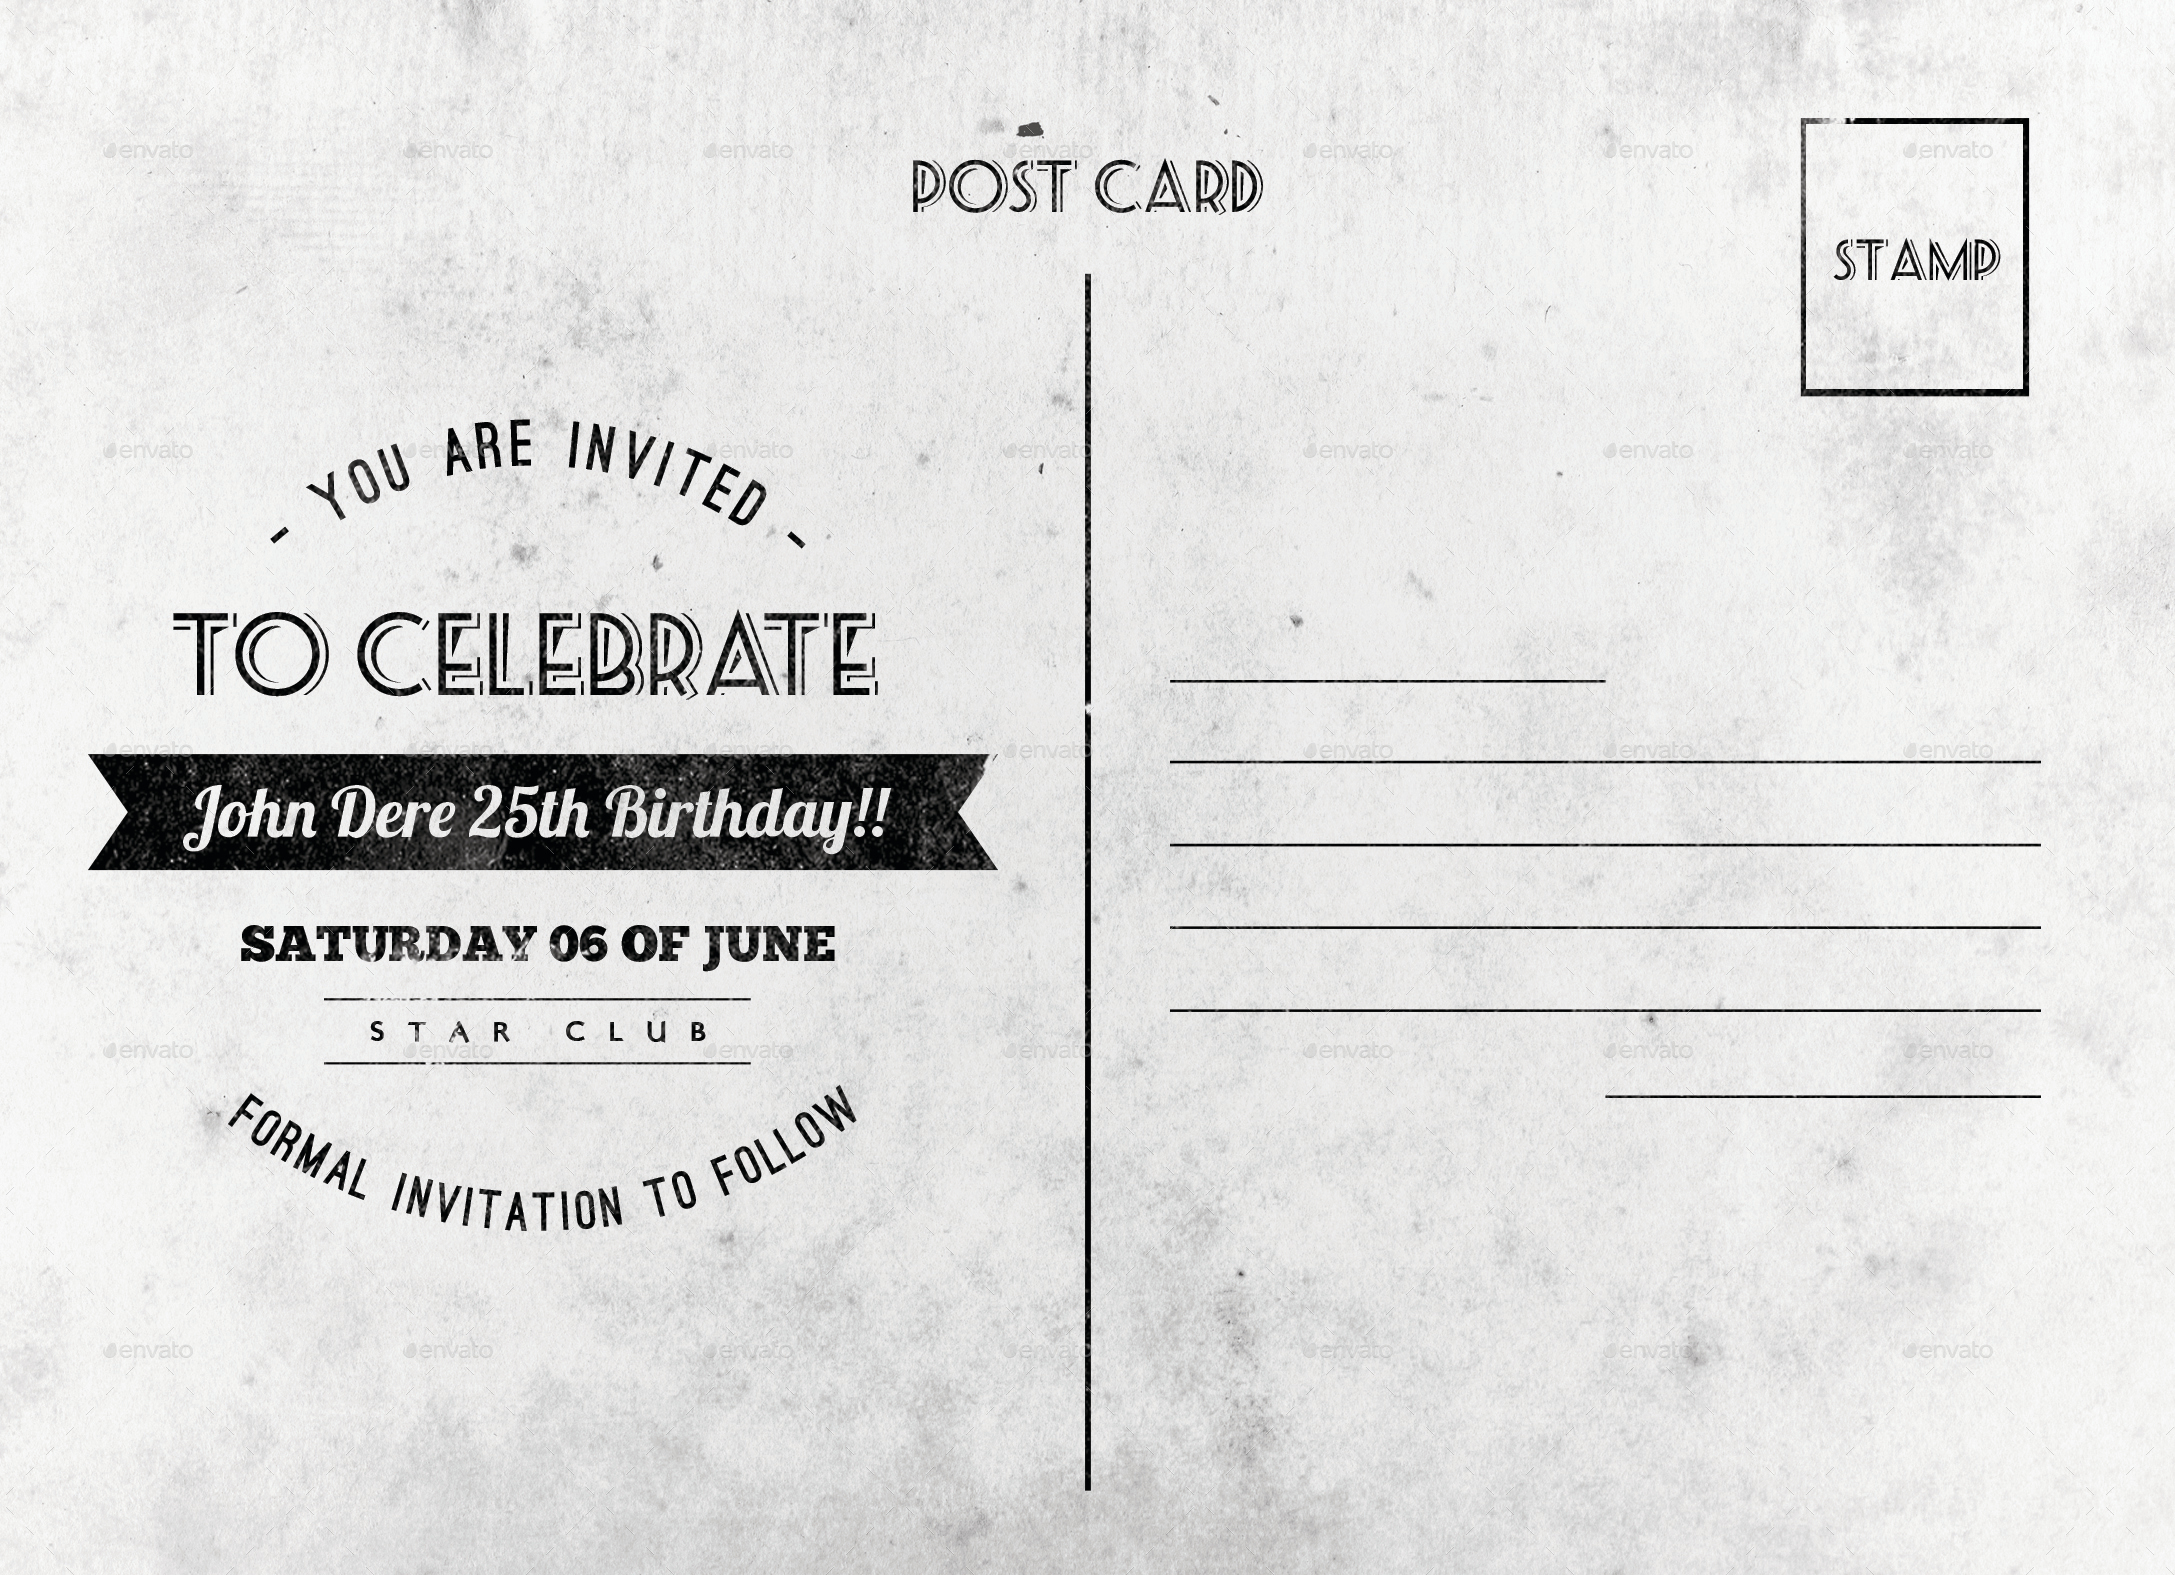 Vintage birthday postcard by nishamehta graphicriver previewbirthday card template white backg bookmarktalkfo Image collections